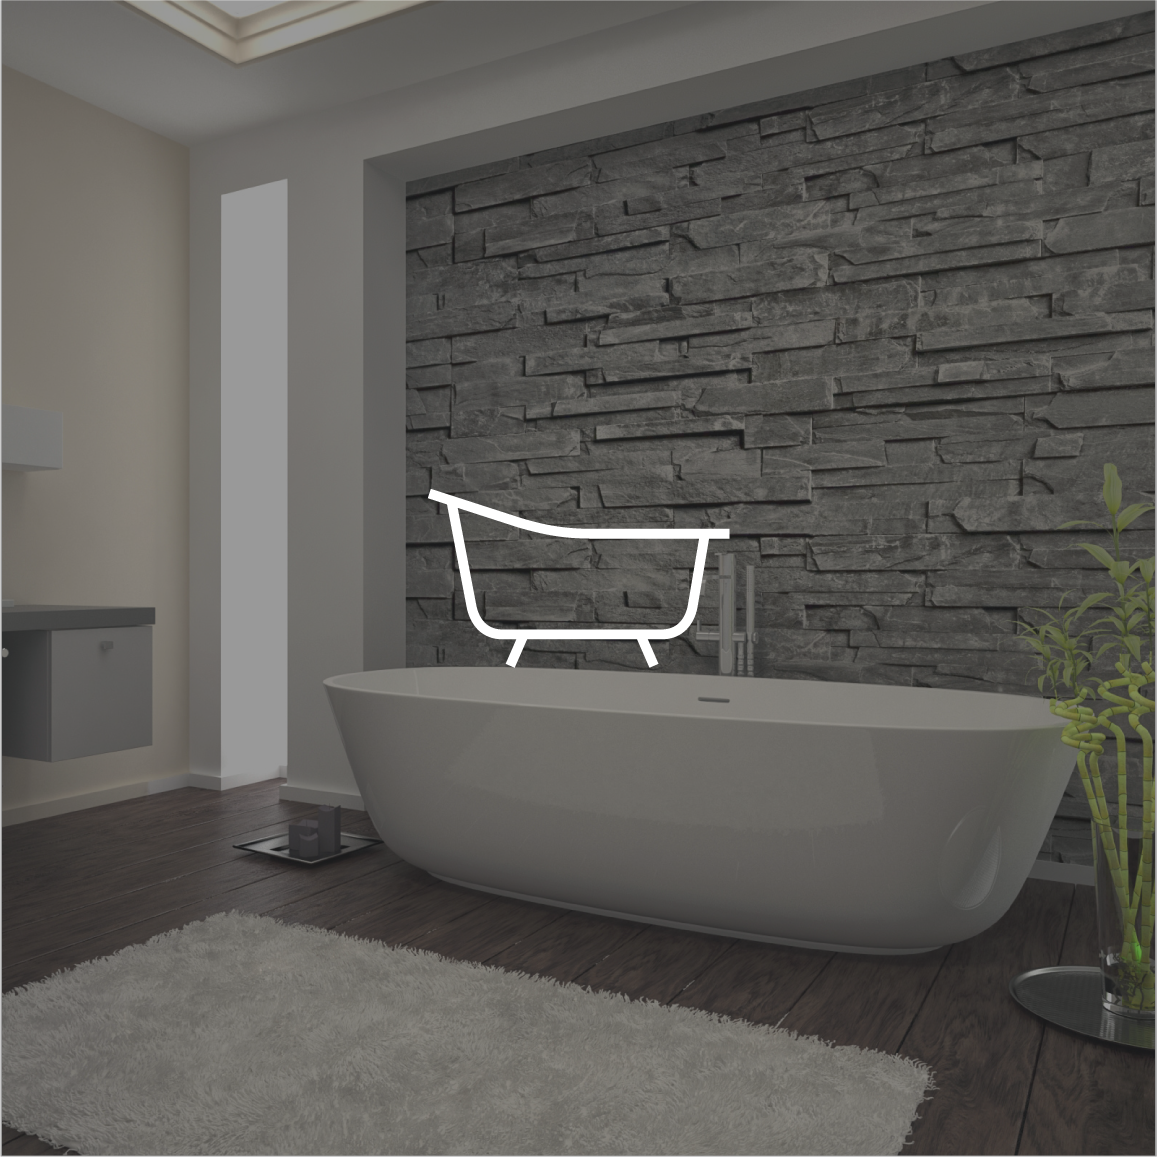 25 years experience. - At Signature Bathrooms Scotland we provide expertly fitted bathrooms throughout Edinburgh and central Scotland. Our friendly team has over 25 years experience allowing us to provide you with the highest quality bathrooms at fantastic prices.With our fantastic free design consultation service we will visit your home to discuss your style preferences as well as the practical elements of what you want from your bathroom. With whole market choice you are never limited or have to compromise allowing you to have the perfect bathroom.Our highly personalised and unique service simplifies the process as there is no need to visit a showroom,we will bring the showroom to you.